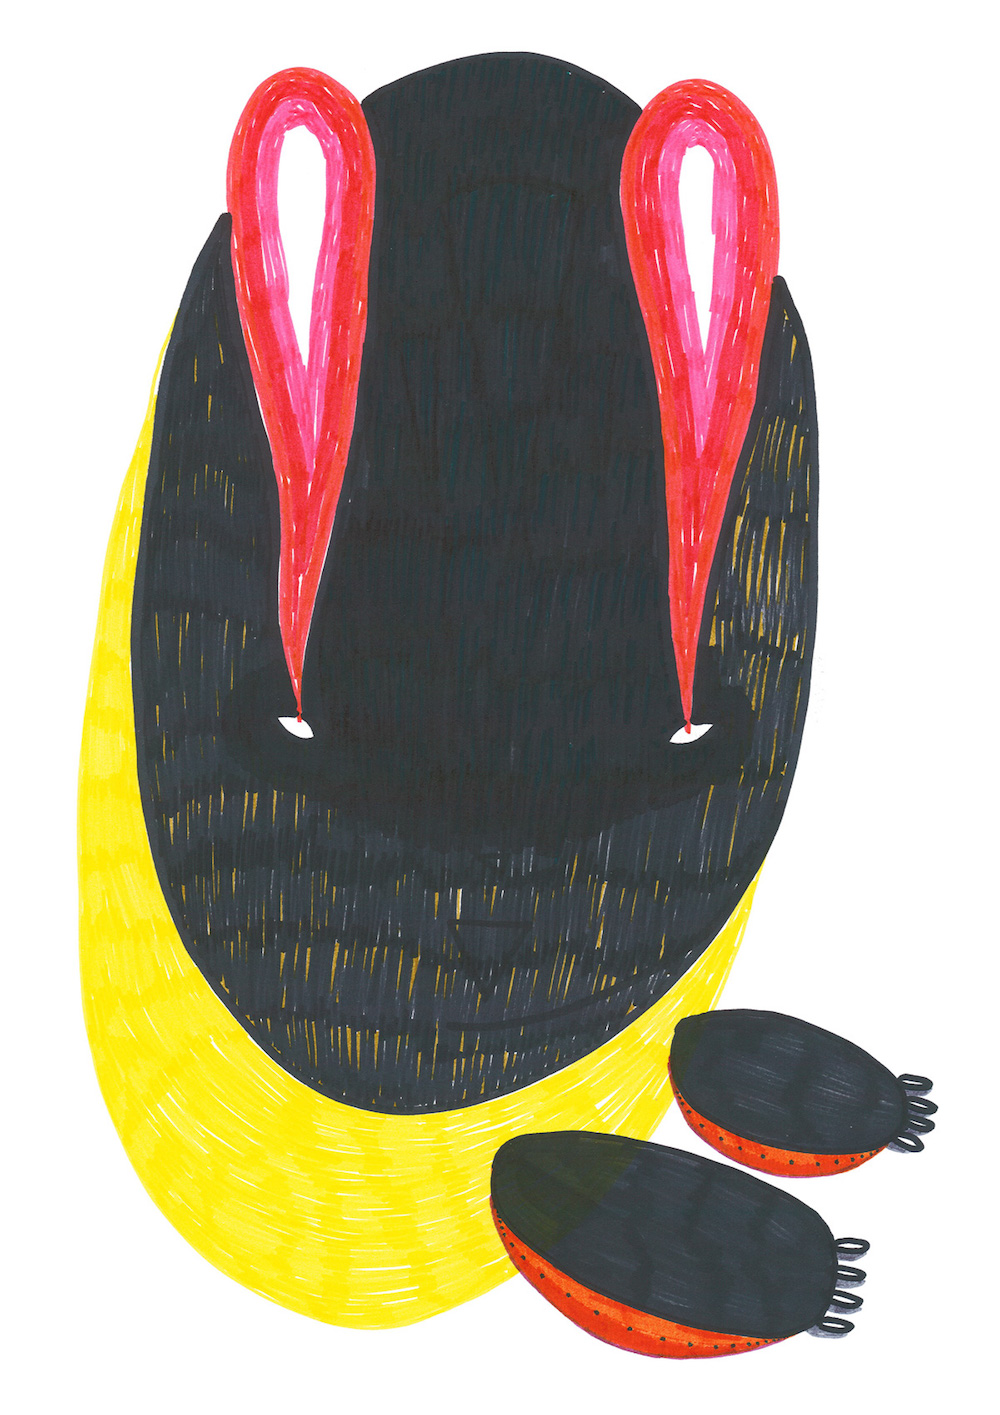 illustration, illustrations, illustrator, illustrators, abstract, oval, oblong, paw, paws, eye, eyes